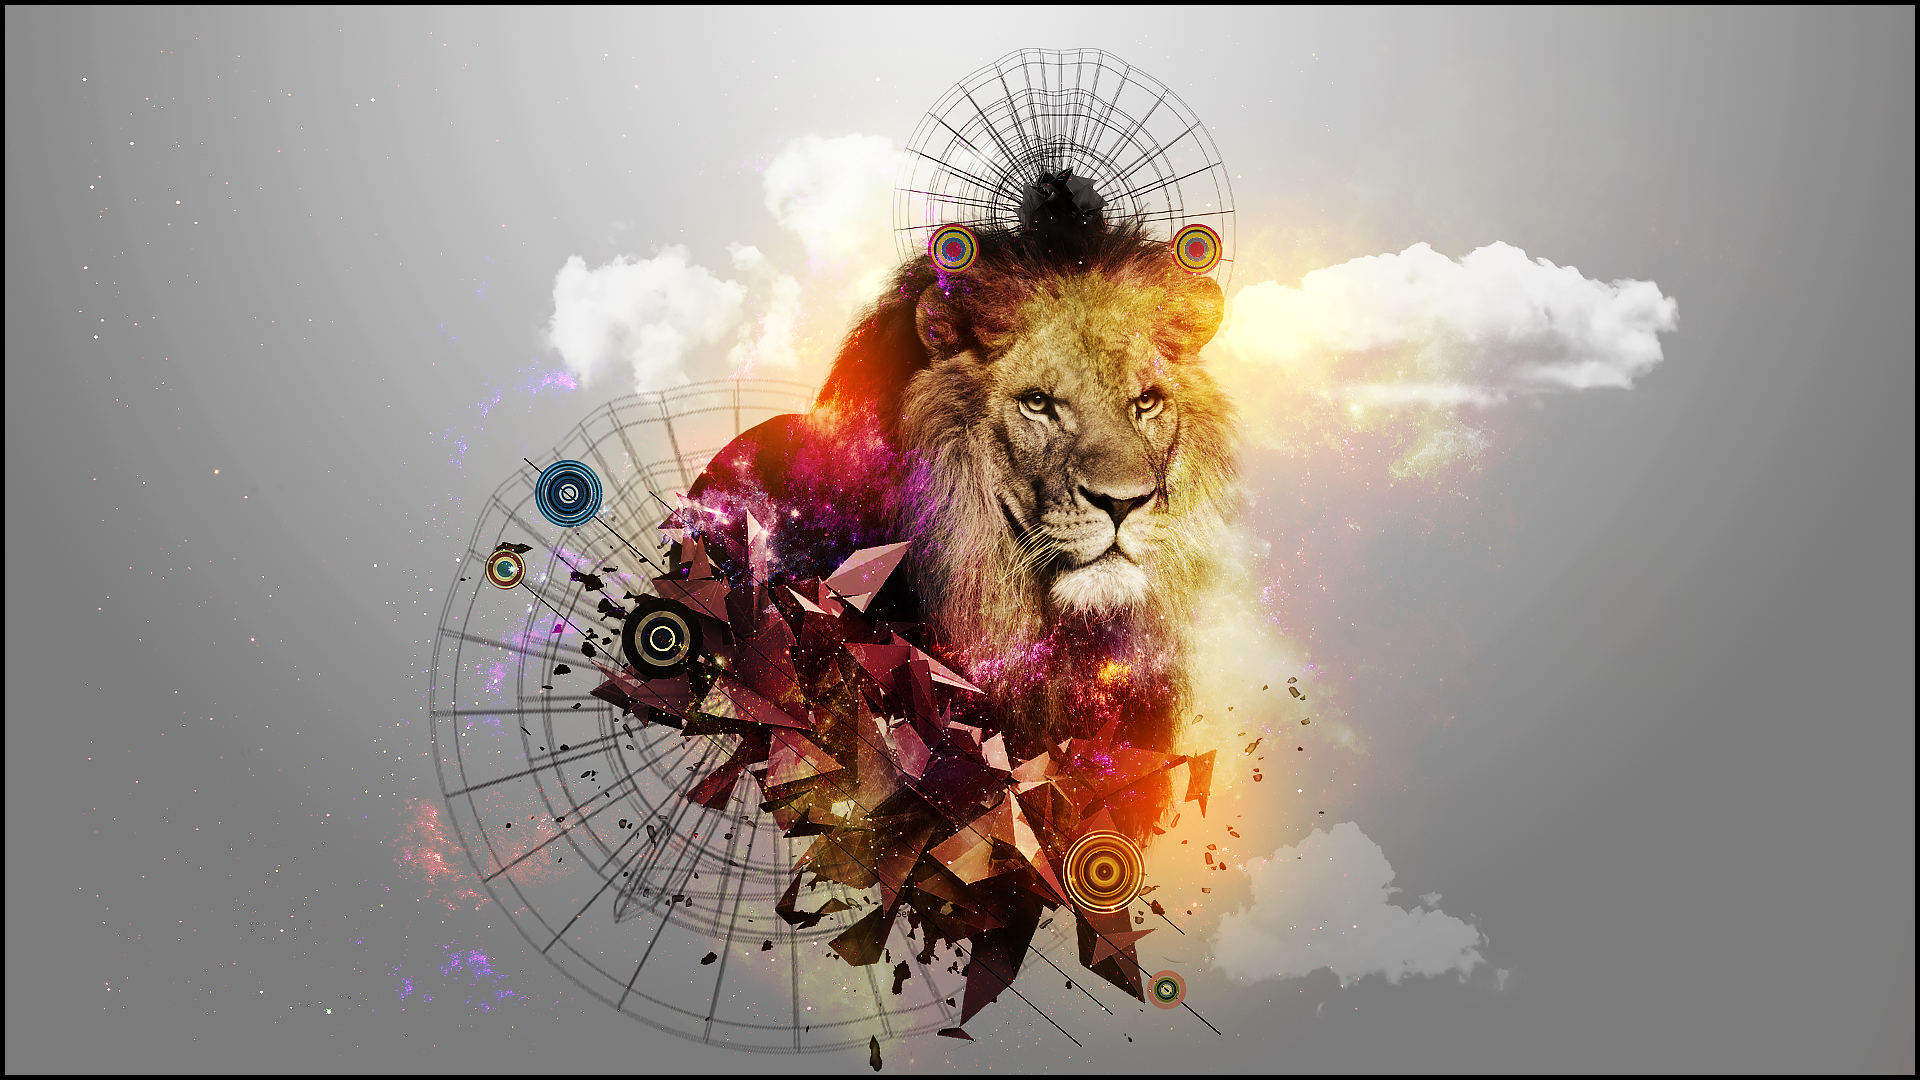 abstract lion 1920 x 1080 wallpaper by gwynbleidd93 on